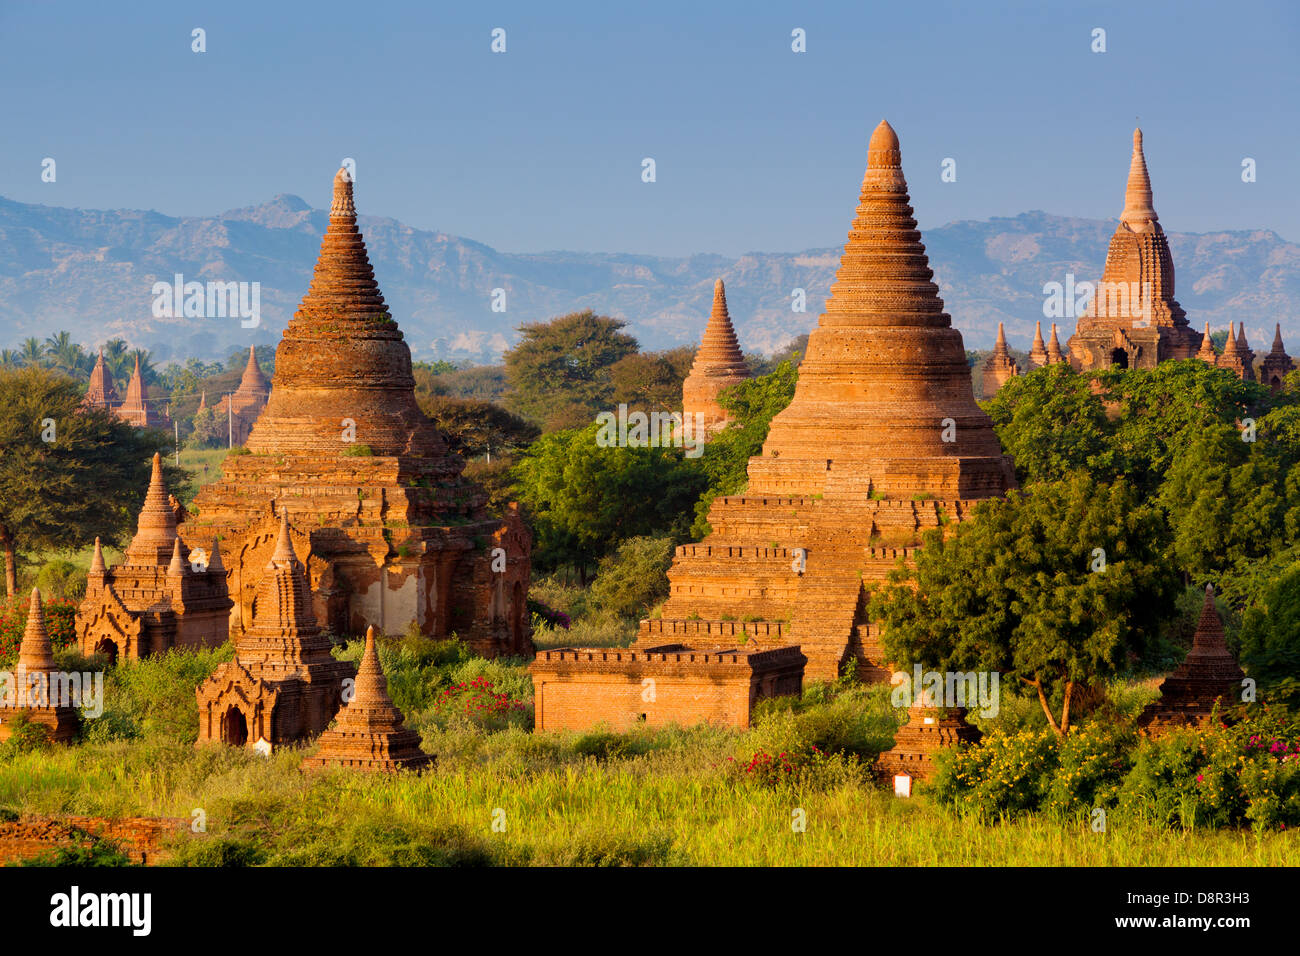 Some of the 4000 ancient temples on the plain of Bagan (or Pagan) in Burma (or Myanmar). A UNESCO World Heritage - Stock Image